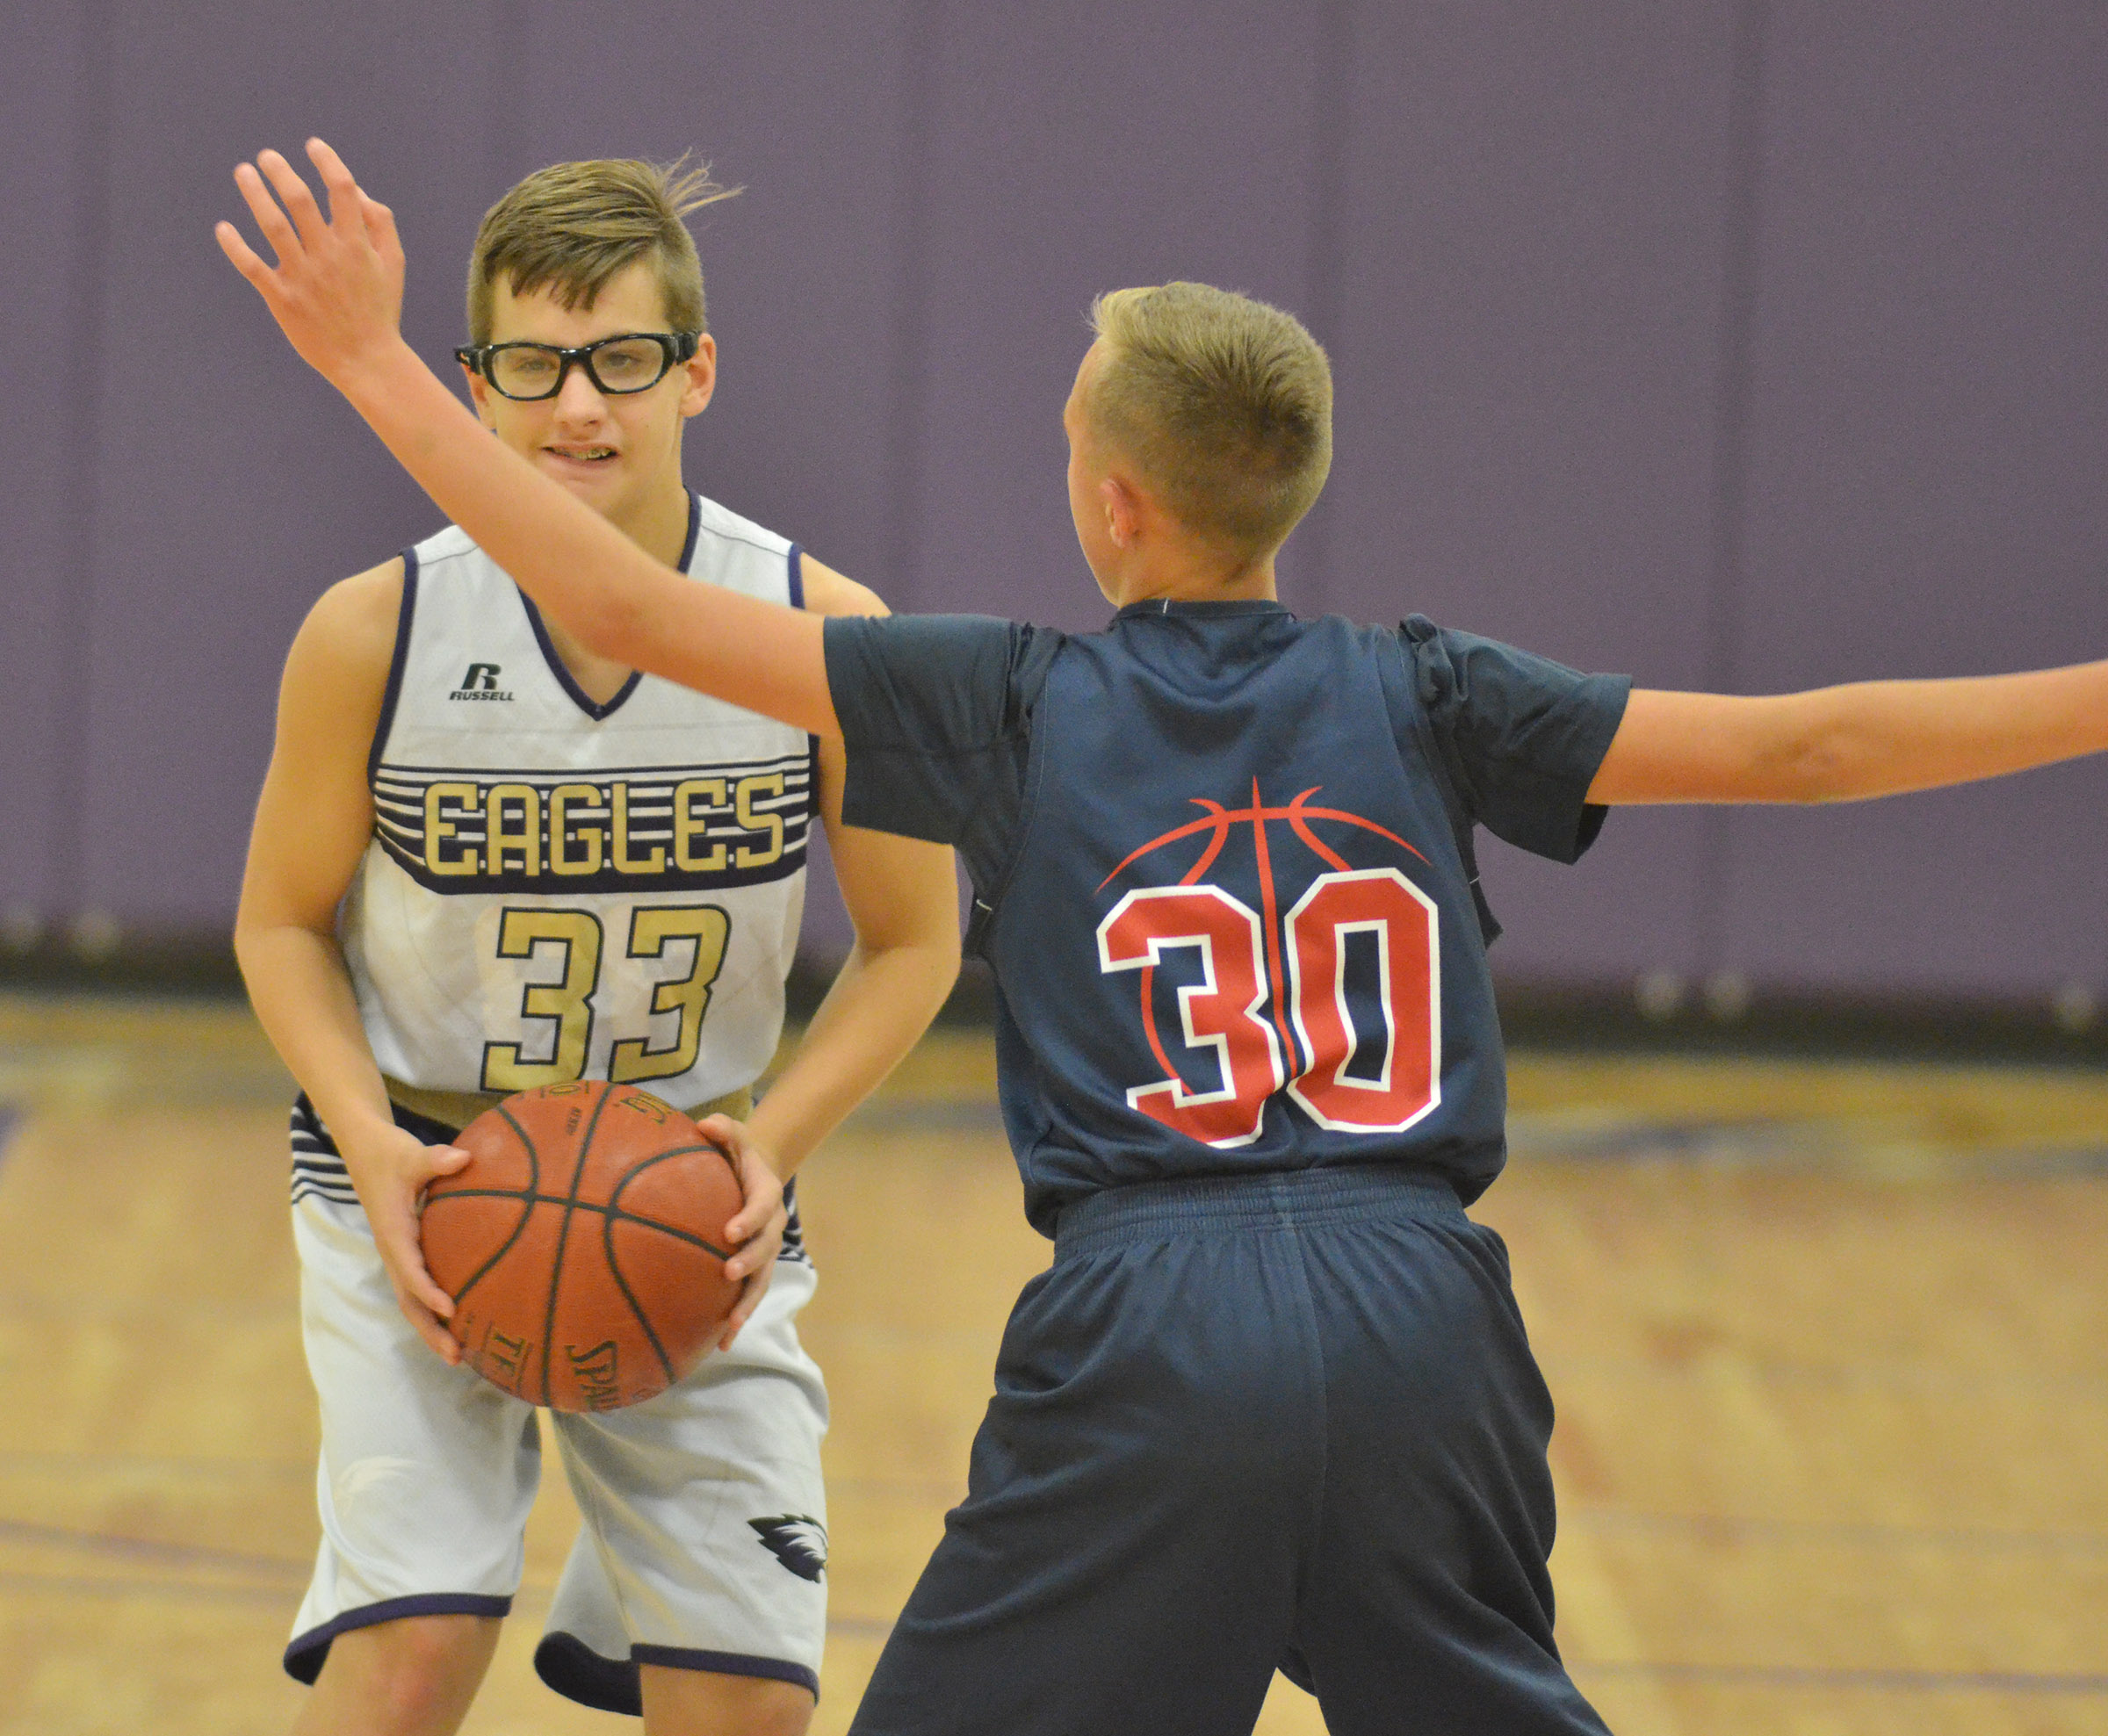 Campbellsville Elementary School fifth-grader Dalton Morris looks to pass.